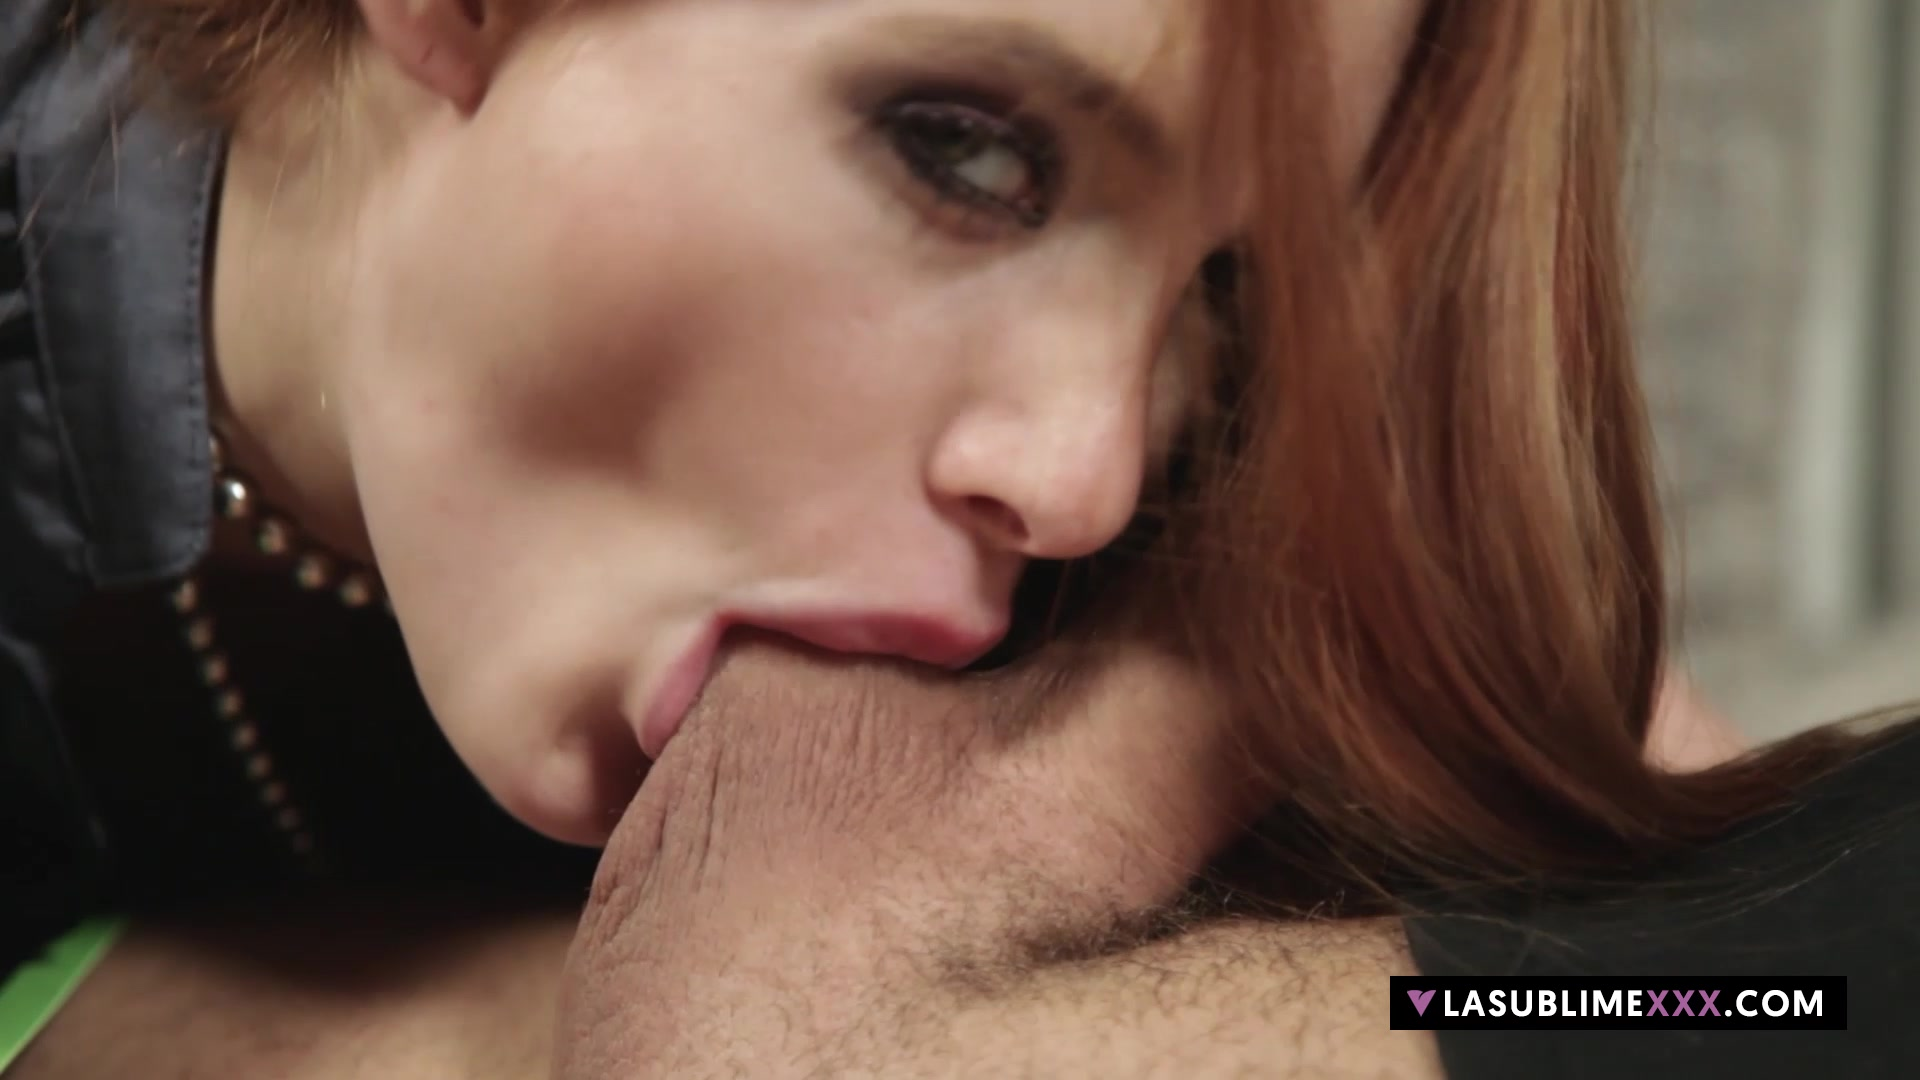 Lasublimexxx denisa heaven takes big cock in her tight pussy 7